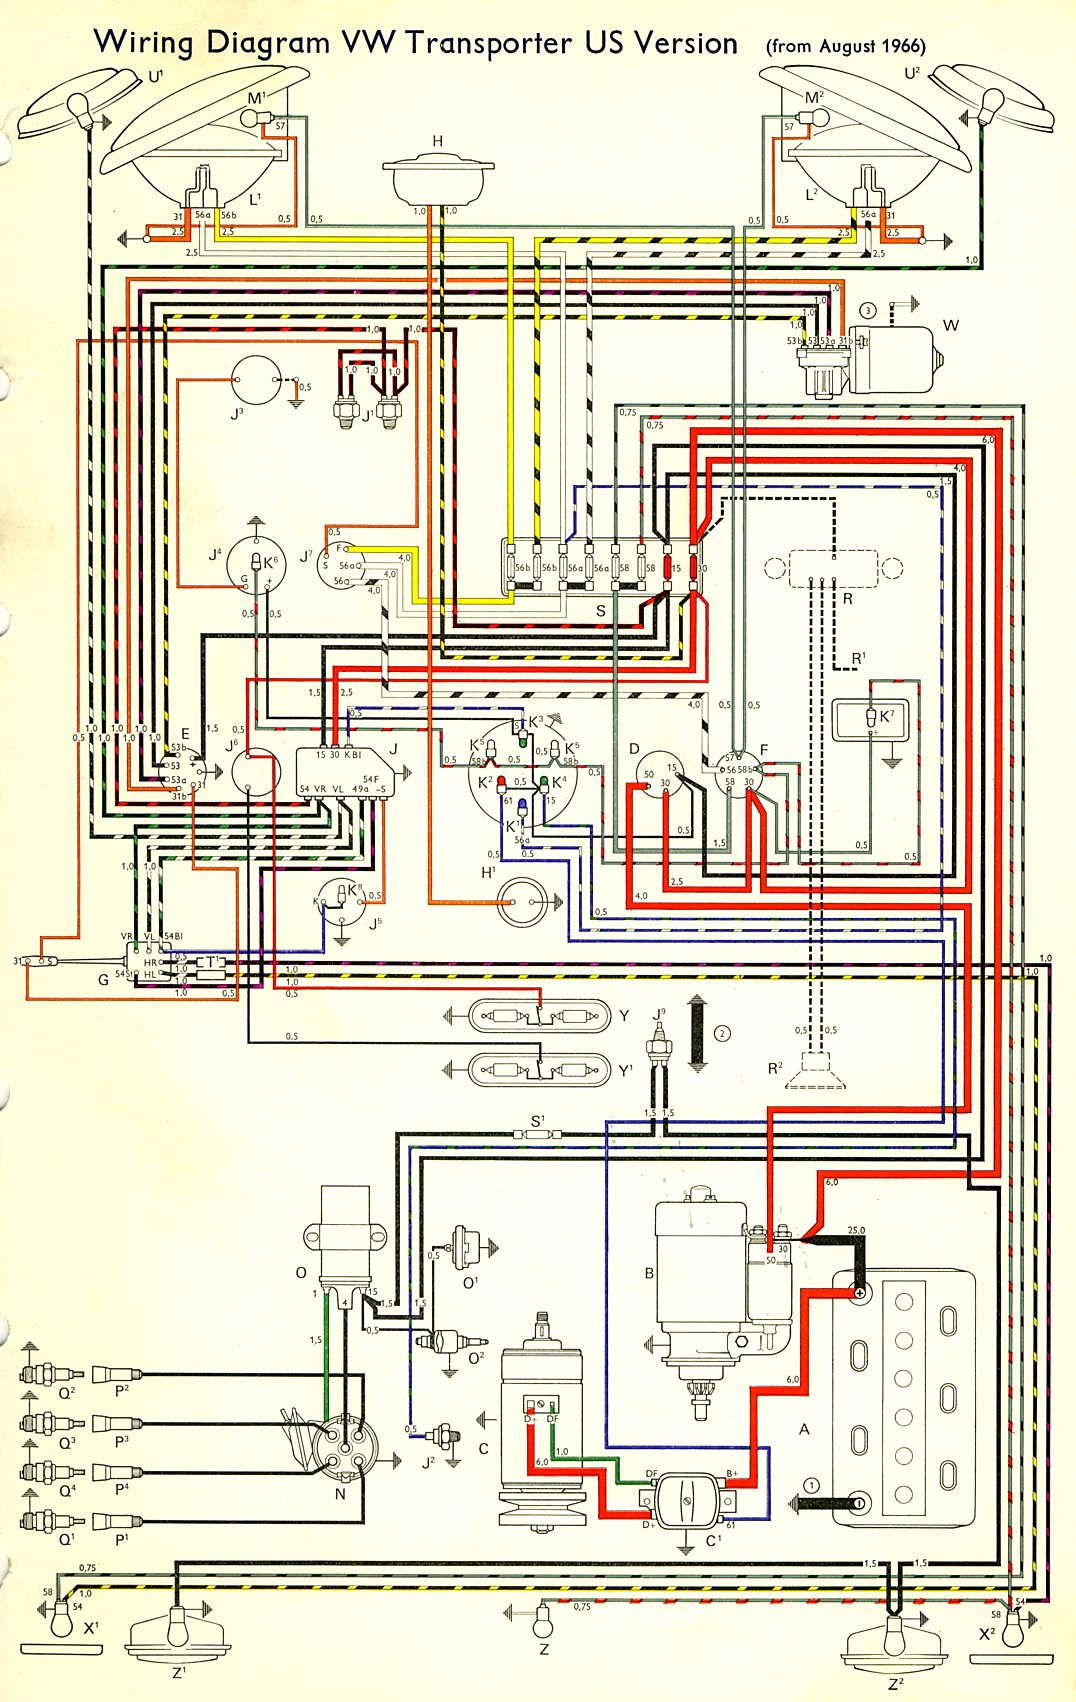 bus_67_USA 67 vw bus wiring harness 71 vw wiring harness \u2022 wiring diagrams vw type 3 wiring harness at crackthecode.co